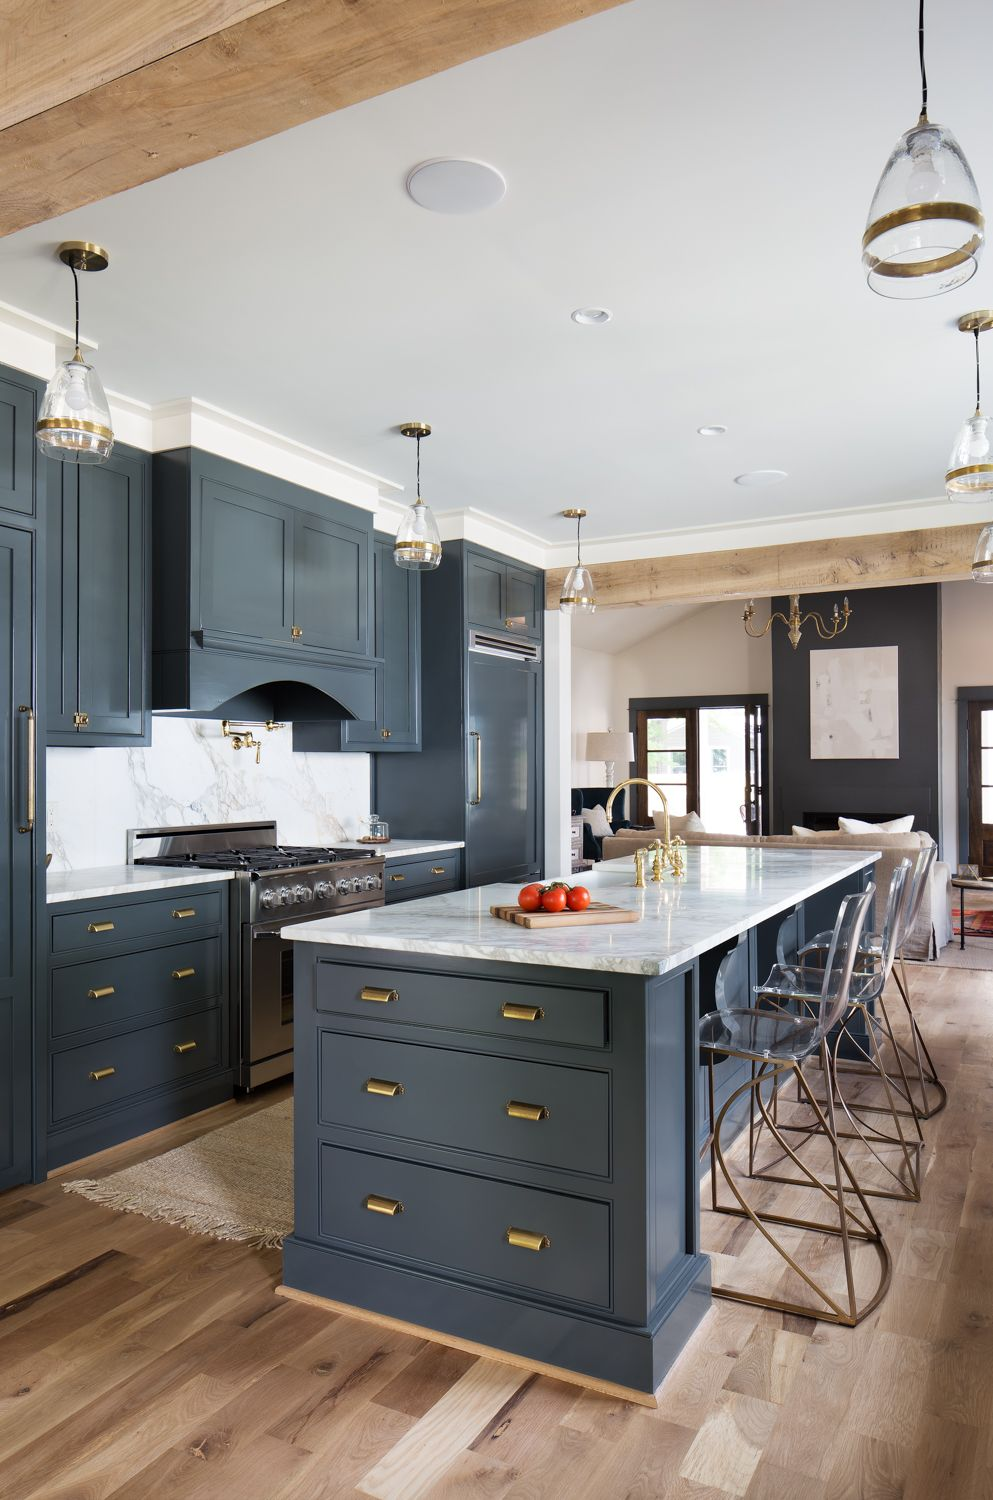 beautiful farmhouse kitchen makeover ideas on  budget decorating home decor and tips also pin by ashley aylward redecorating pinterest rh